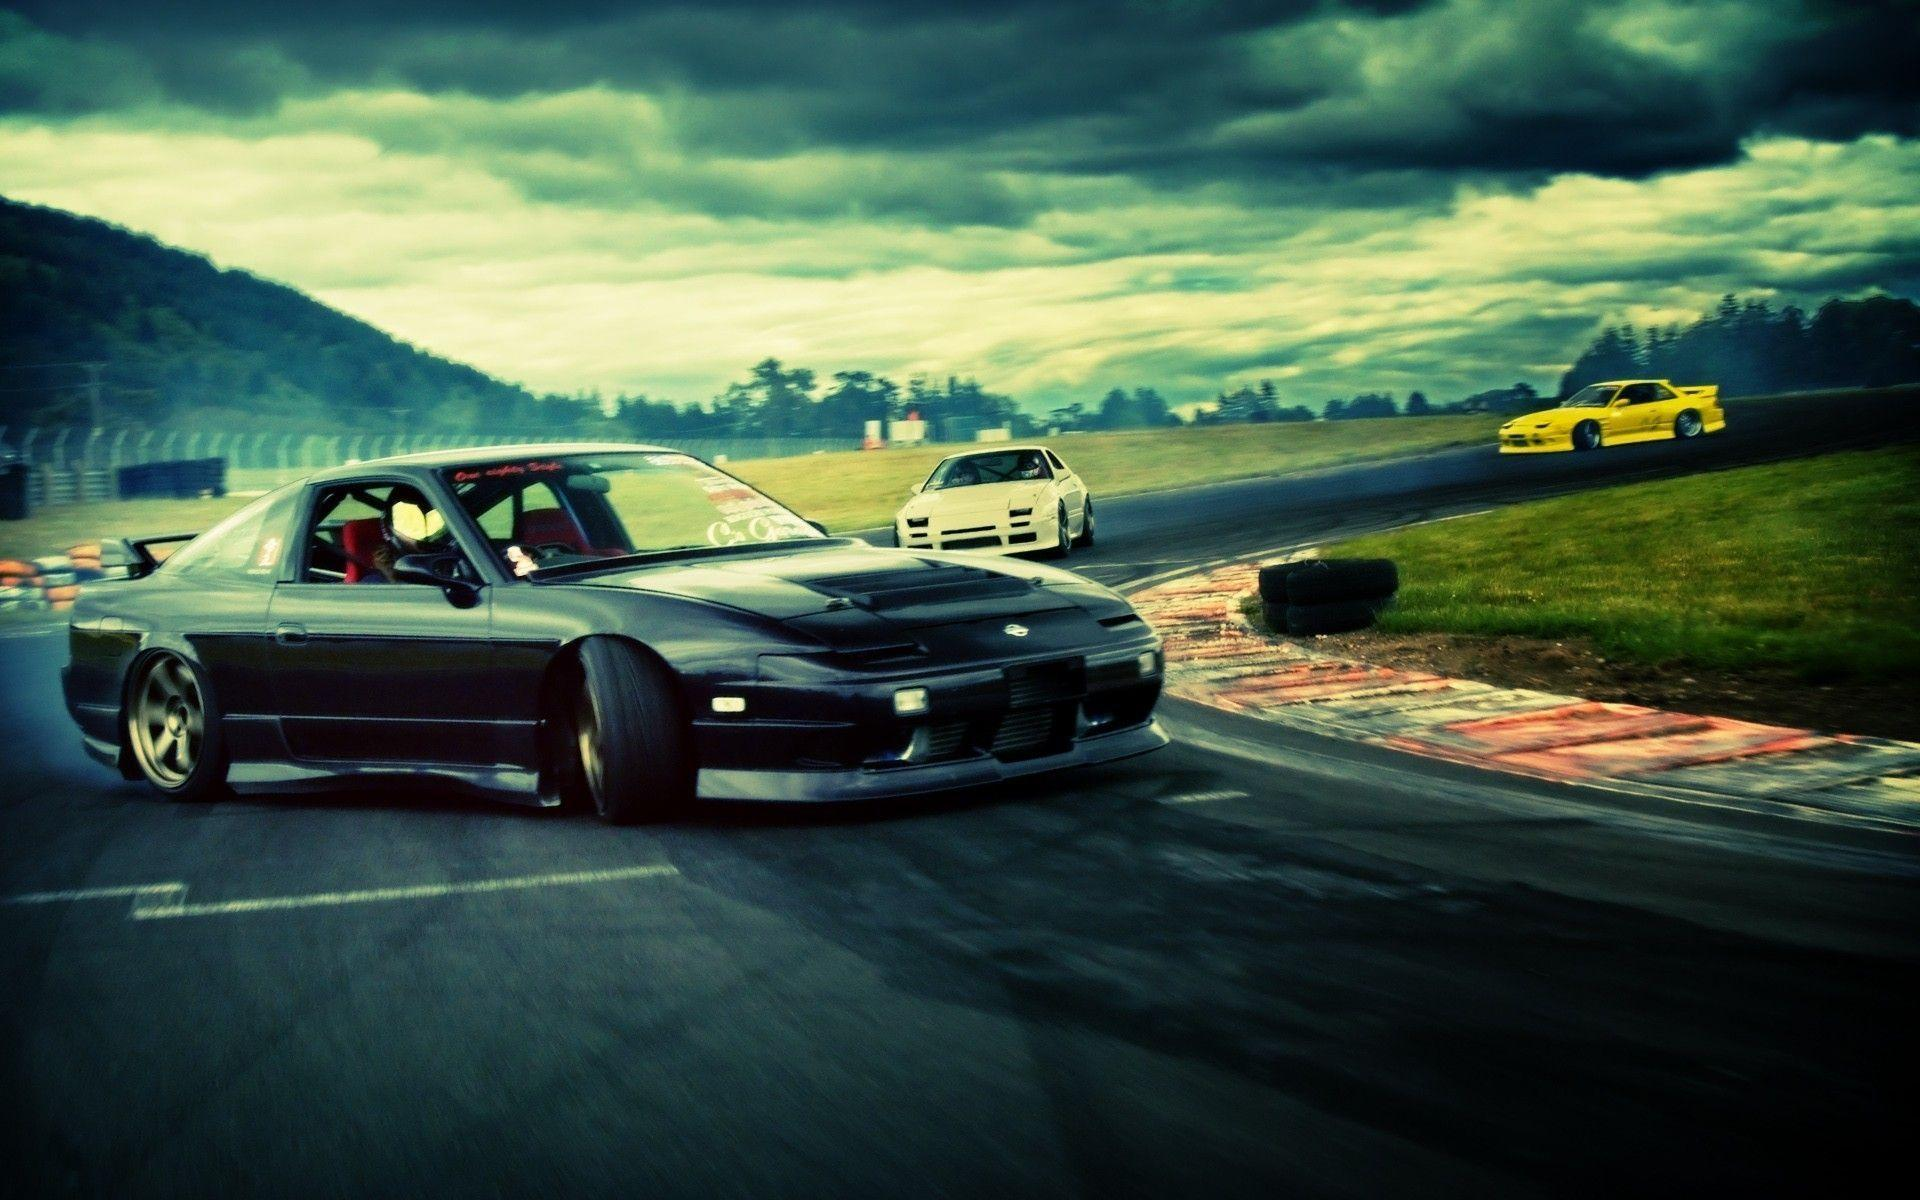 Wallpapers drift, nissan 240sx, 180sx - car pictures and photos ...